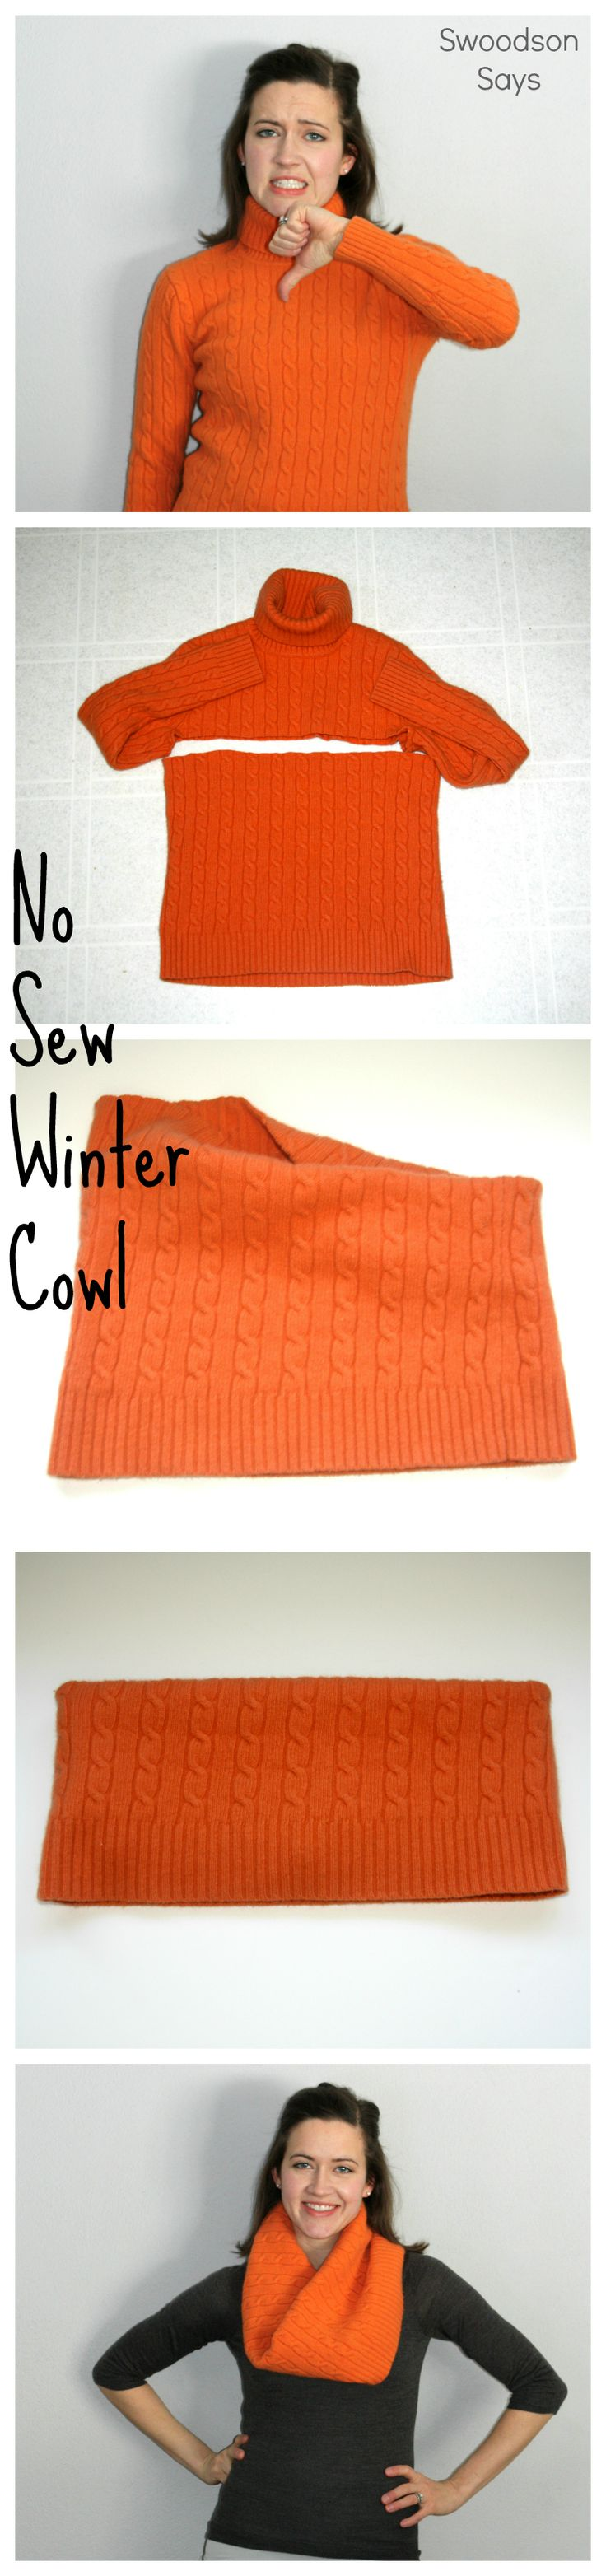 How to Upcycle a Sweater for a No Sew Winter Cowl DIY / Swoodsonsays.com